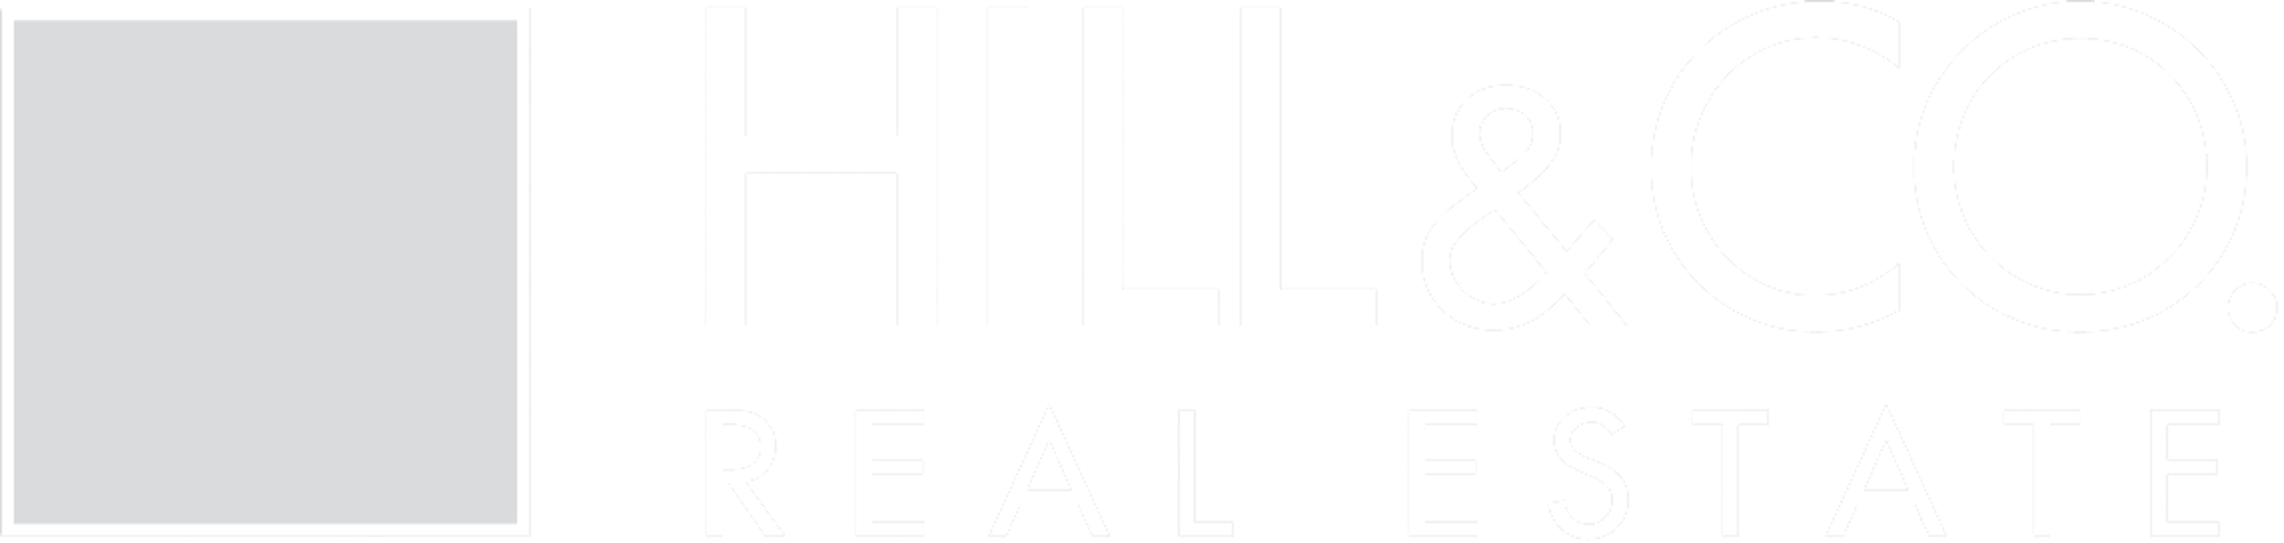 Hill and Co. logo